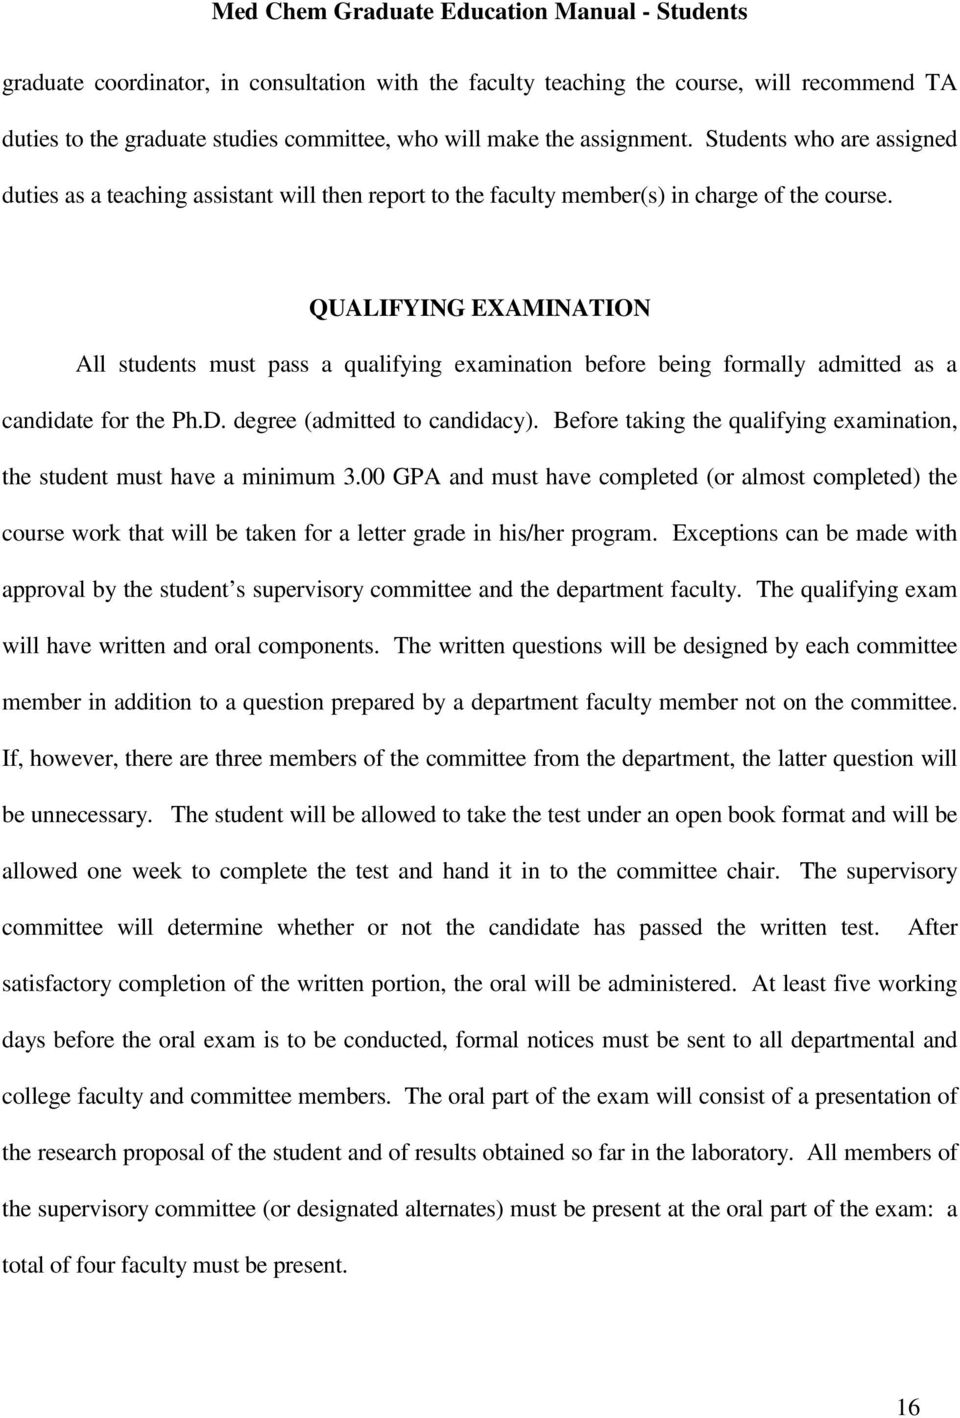 QUALIFYING EXAMINATION All students must pass a qualifying examination before being formally admitted as a candidate for the Ph.D. degree (admitted to candidacy).